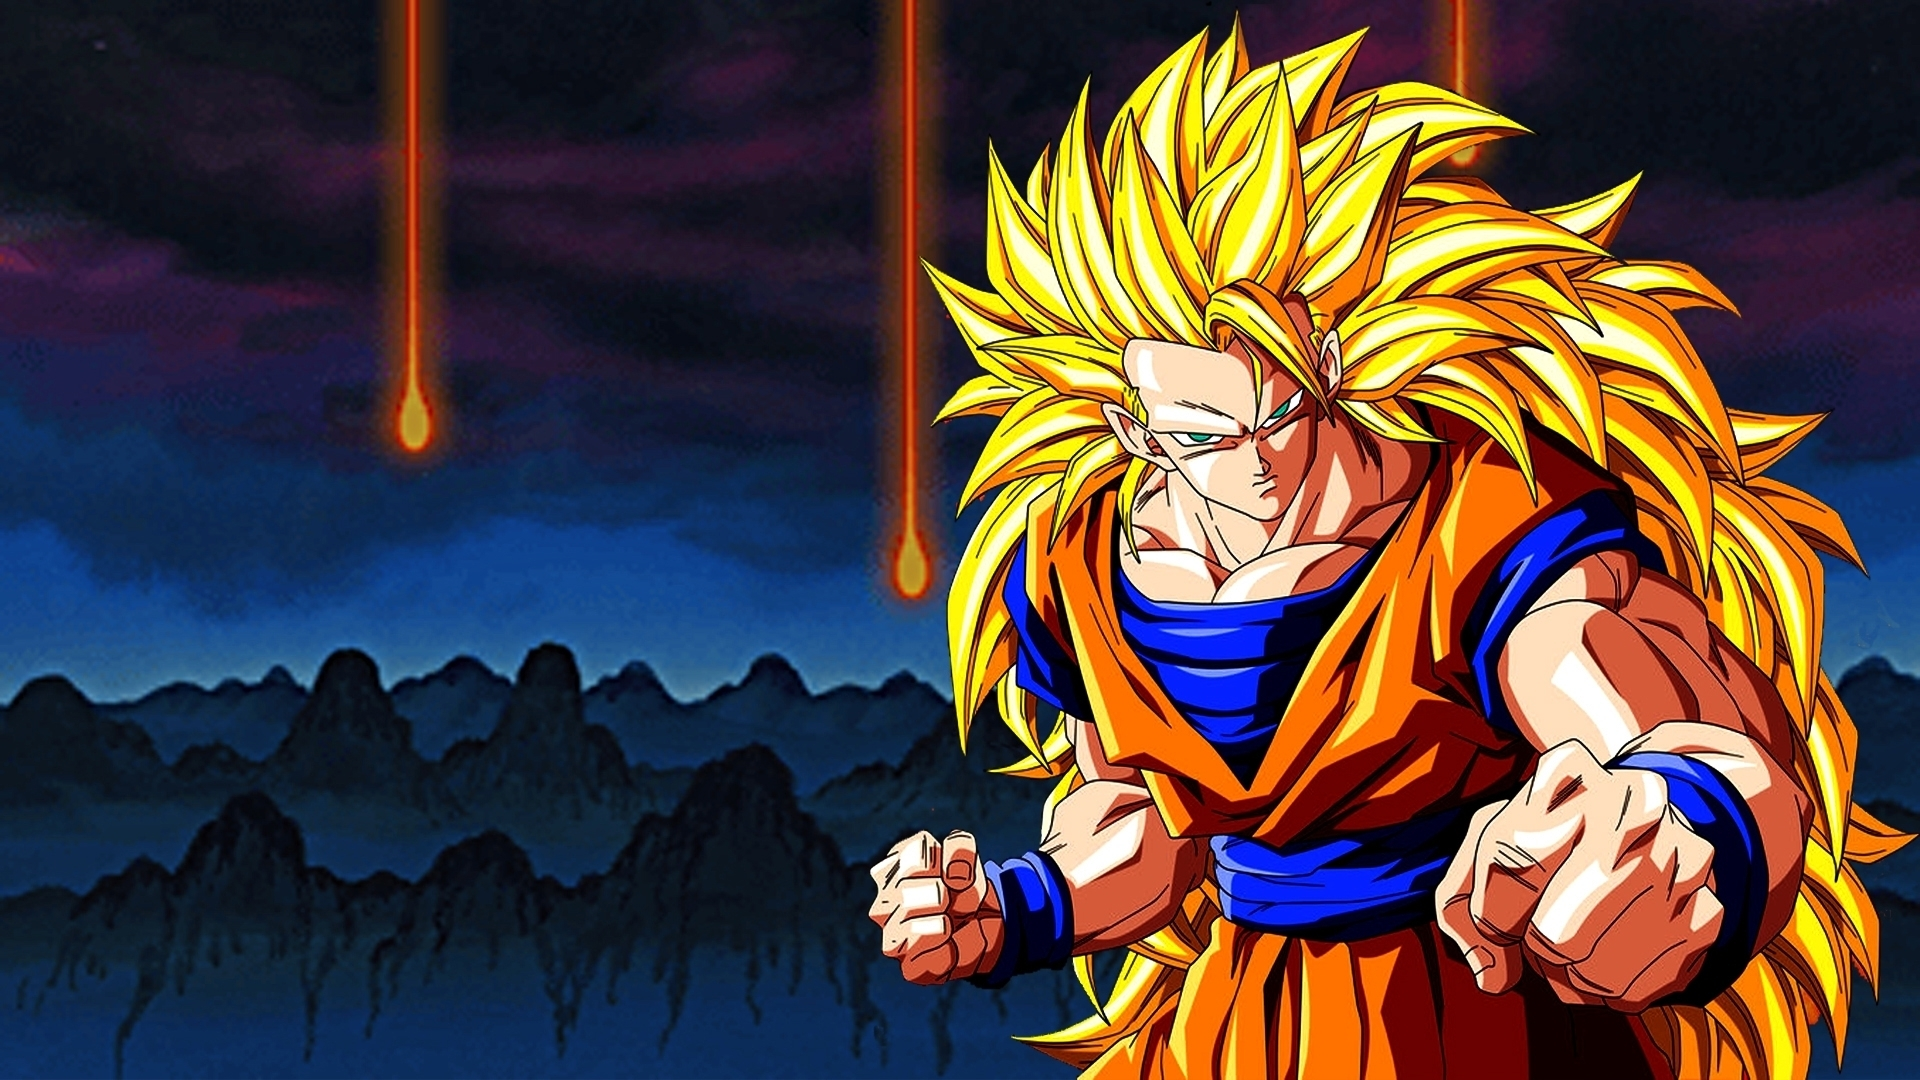 Goku 4k Wallpapers For Your Desktop Or Mobile Screen Free And Easy To Download